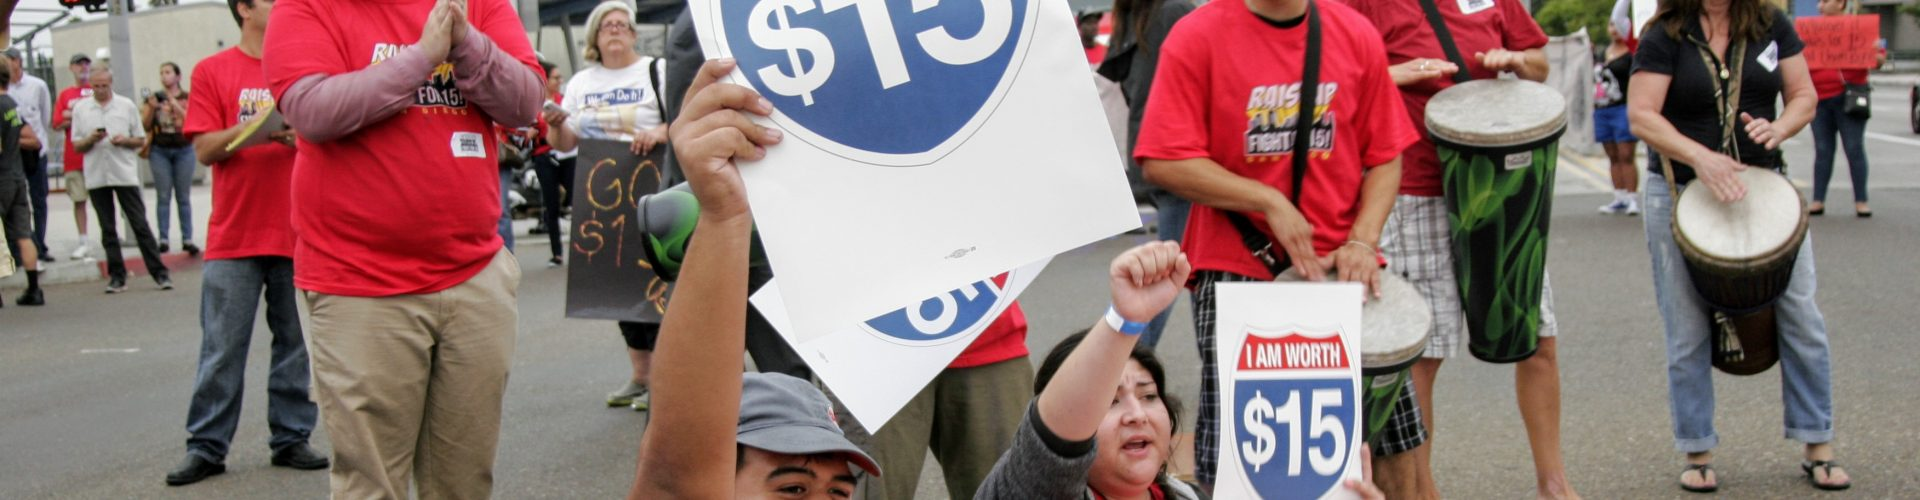 Residents rally for increasing minimum wage in the City Heights neighborhood of San Diego